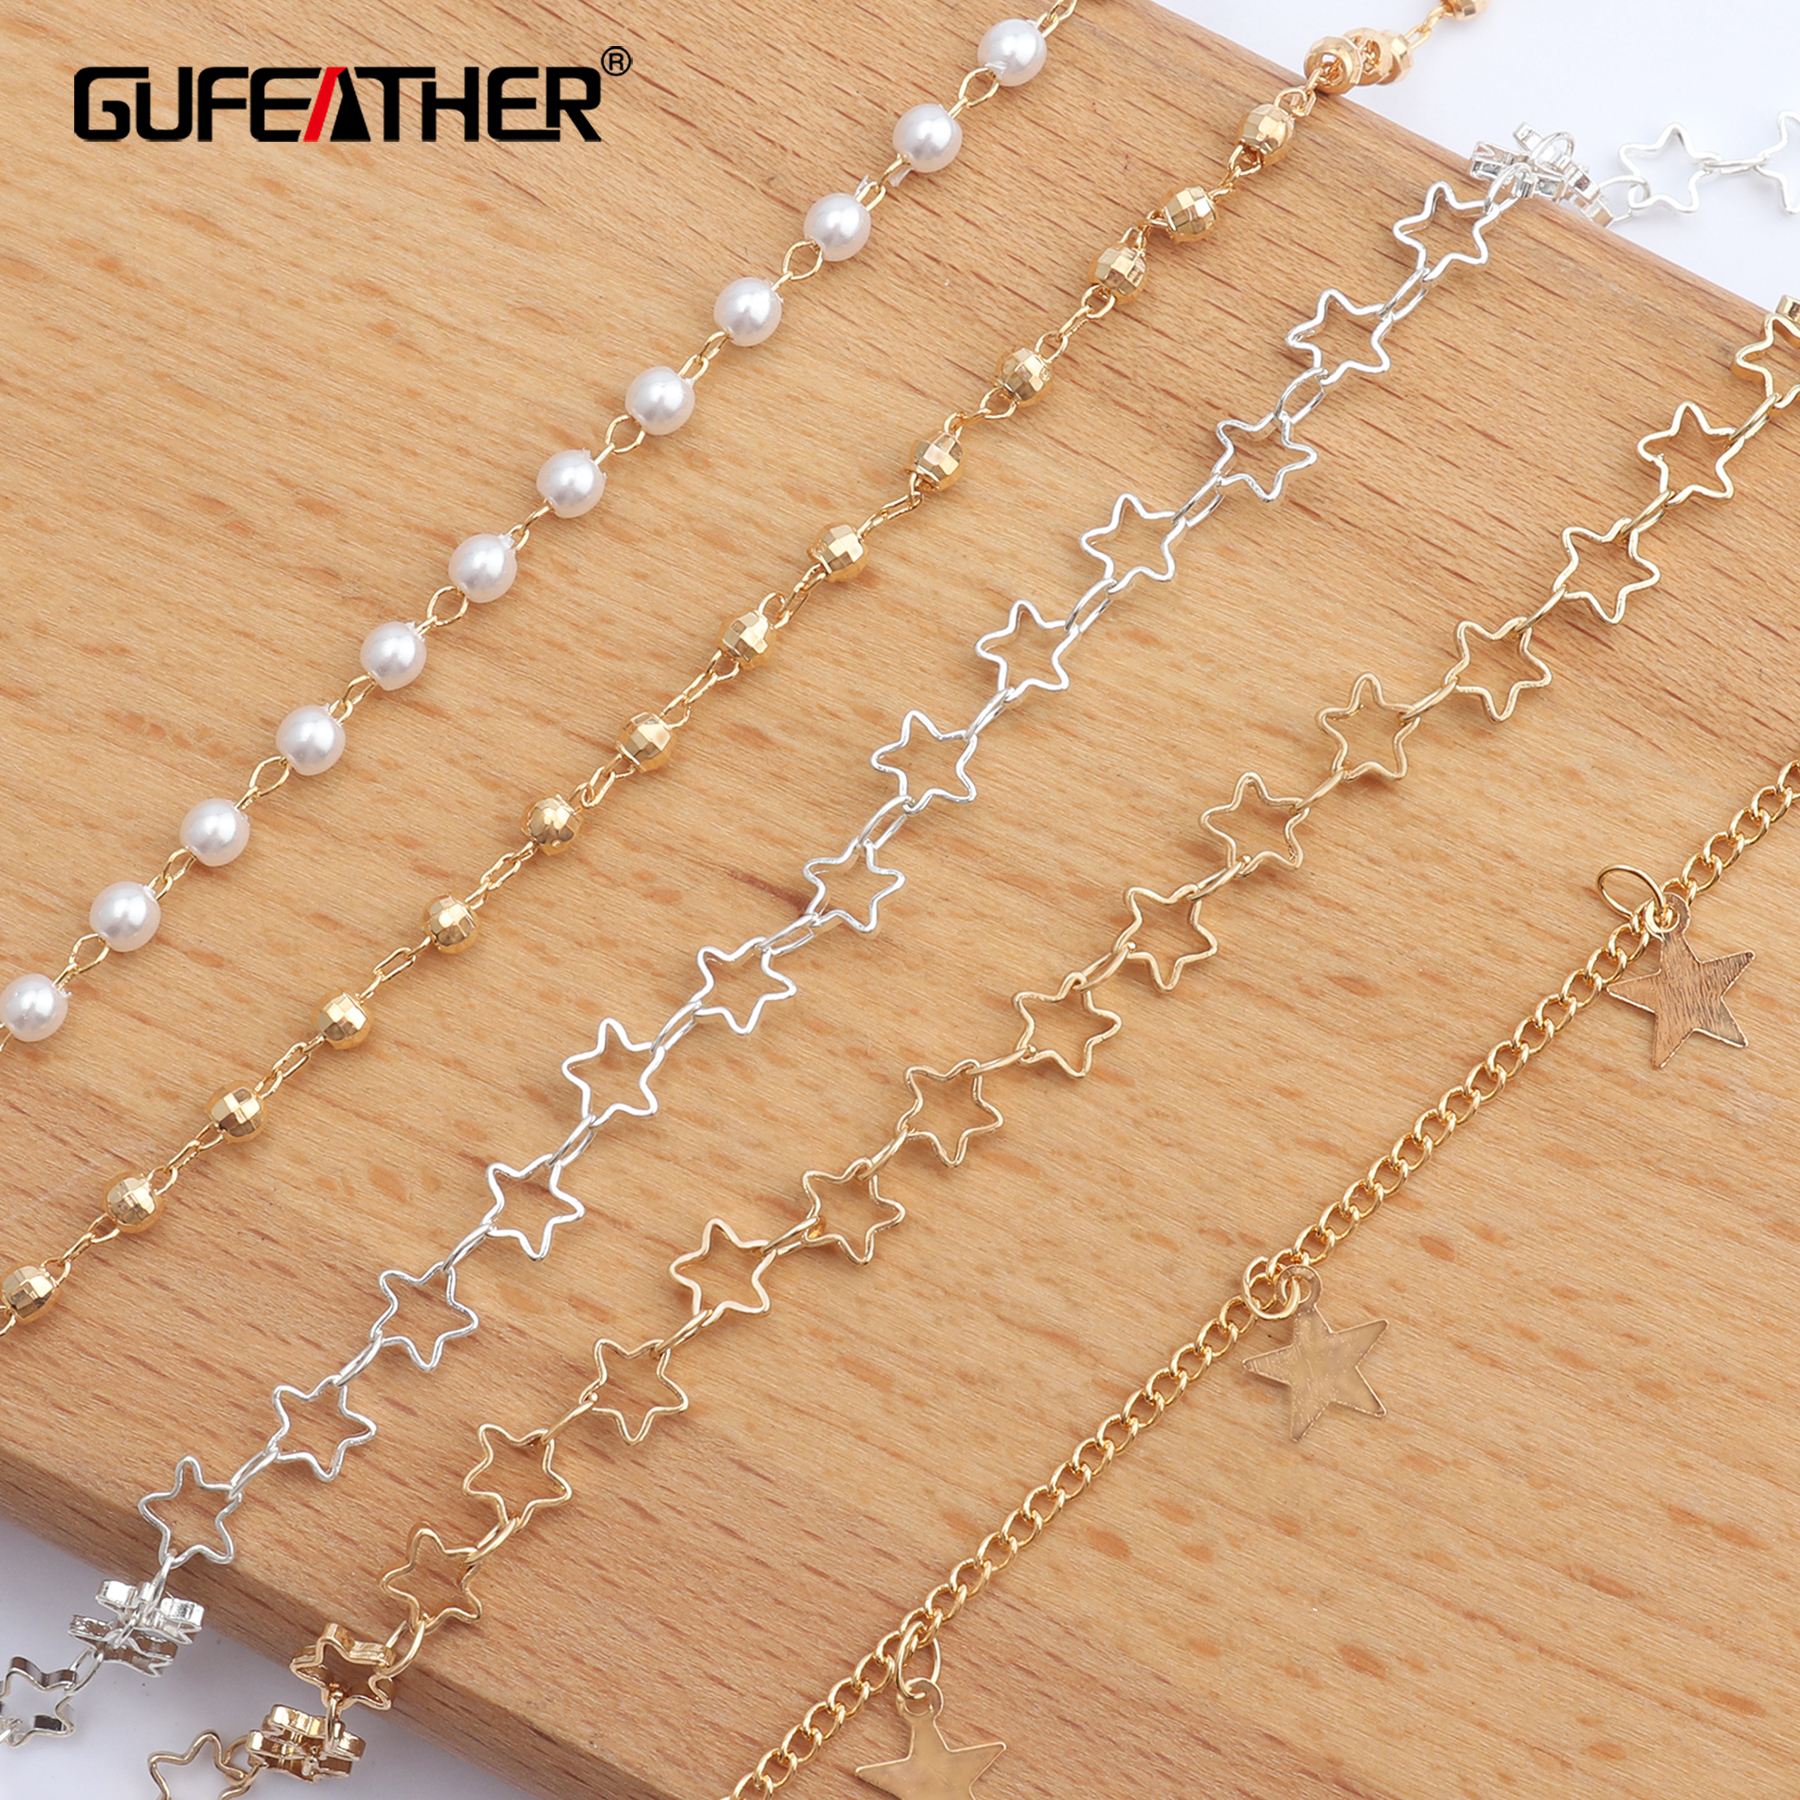 GUFEATHER C46,jewelry Accessories,diy Pearl Star Chain,18k Gold Plated,jewelry Making,diy Necklace,necklace For Women,3m/lot